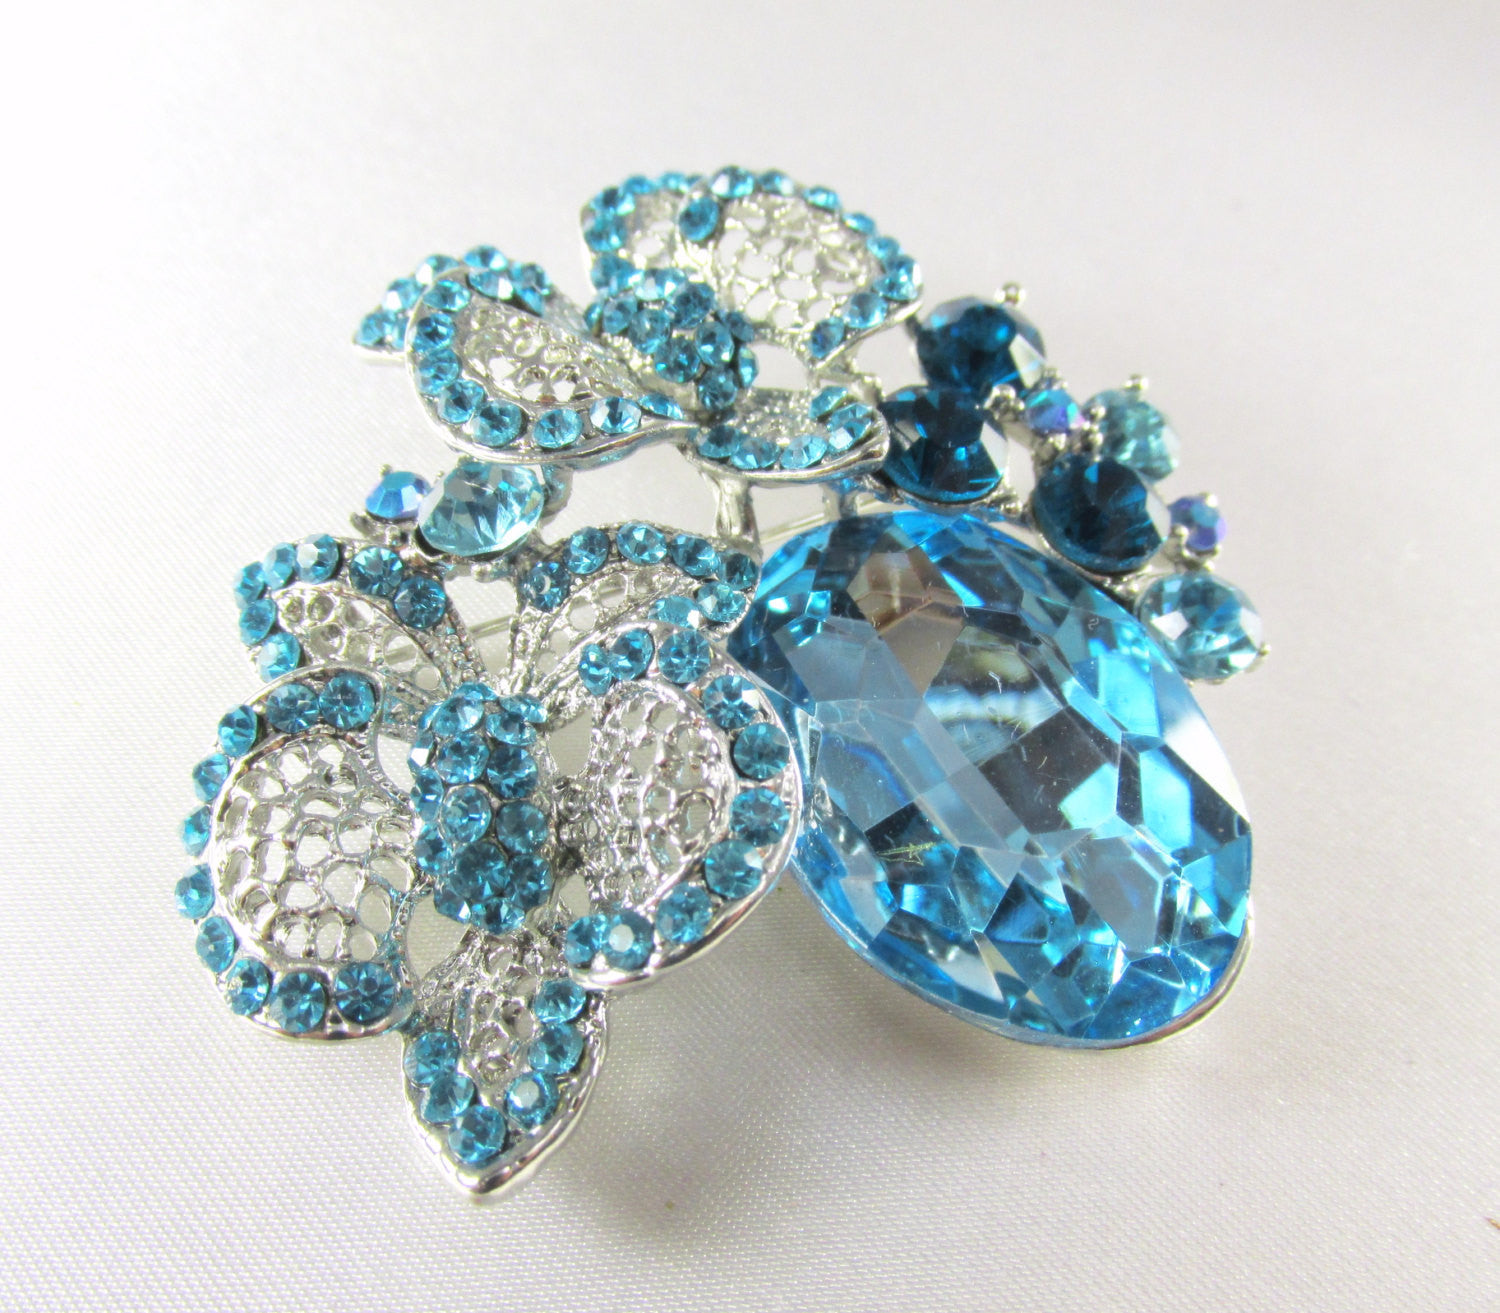 Blue Turquoise Silver Cluster Brooch Pin - Odyssey Cache